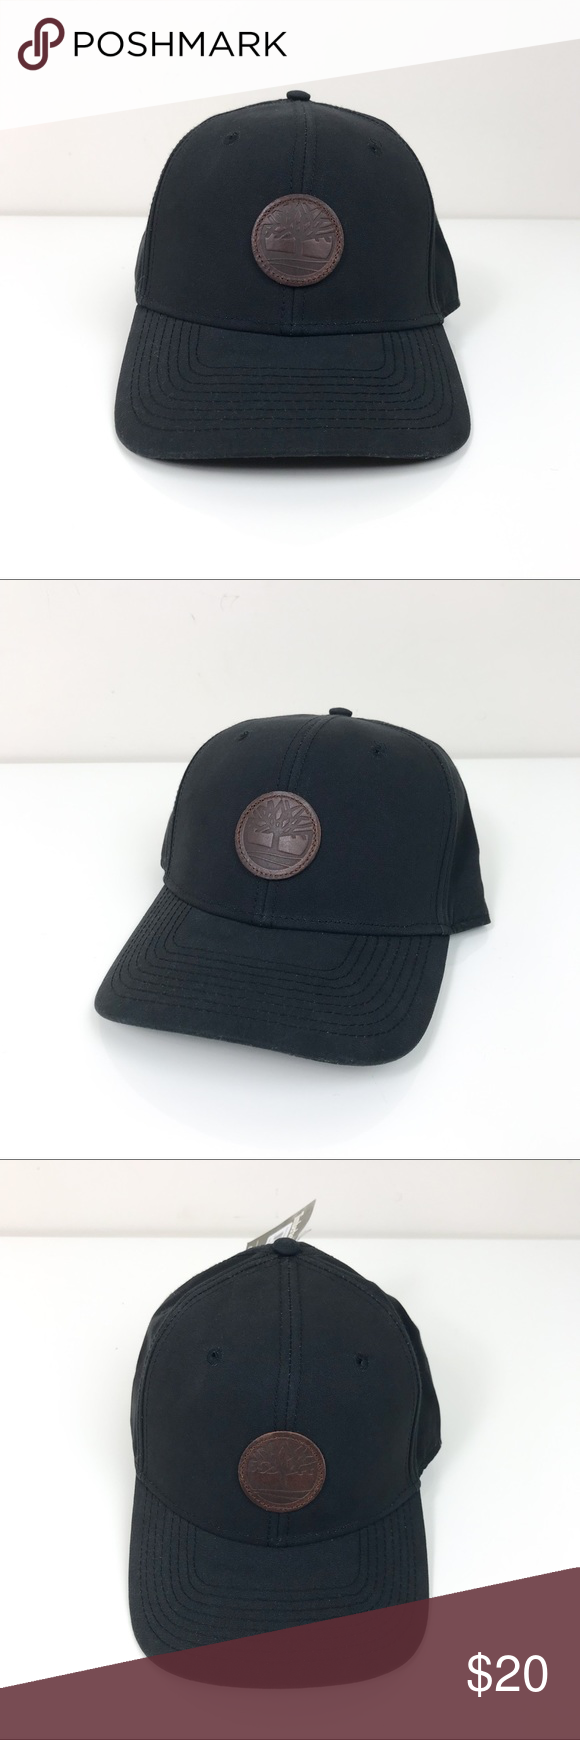 d745362dfef Timberland Men s Cotton Canvas Baseball Cap Black Timberland Men s Cotton  Canvas Baseball Cap Black One Size This Timberland cap is brand new with  tags.